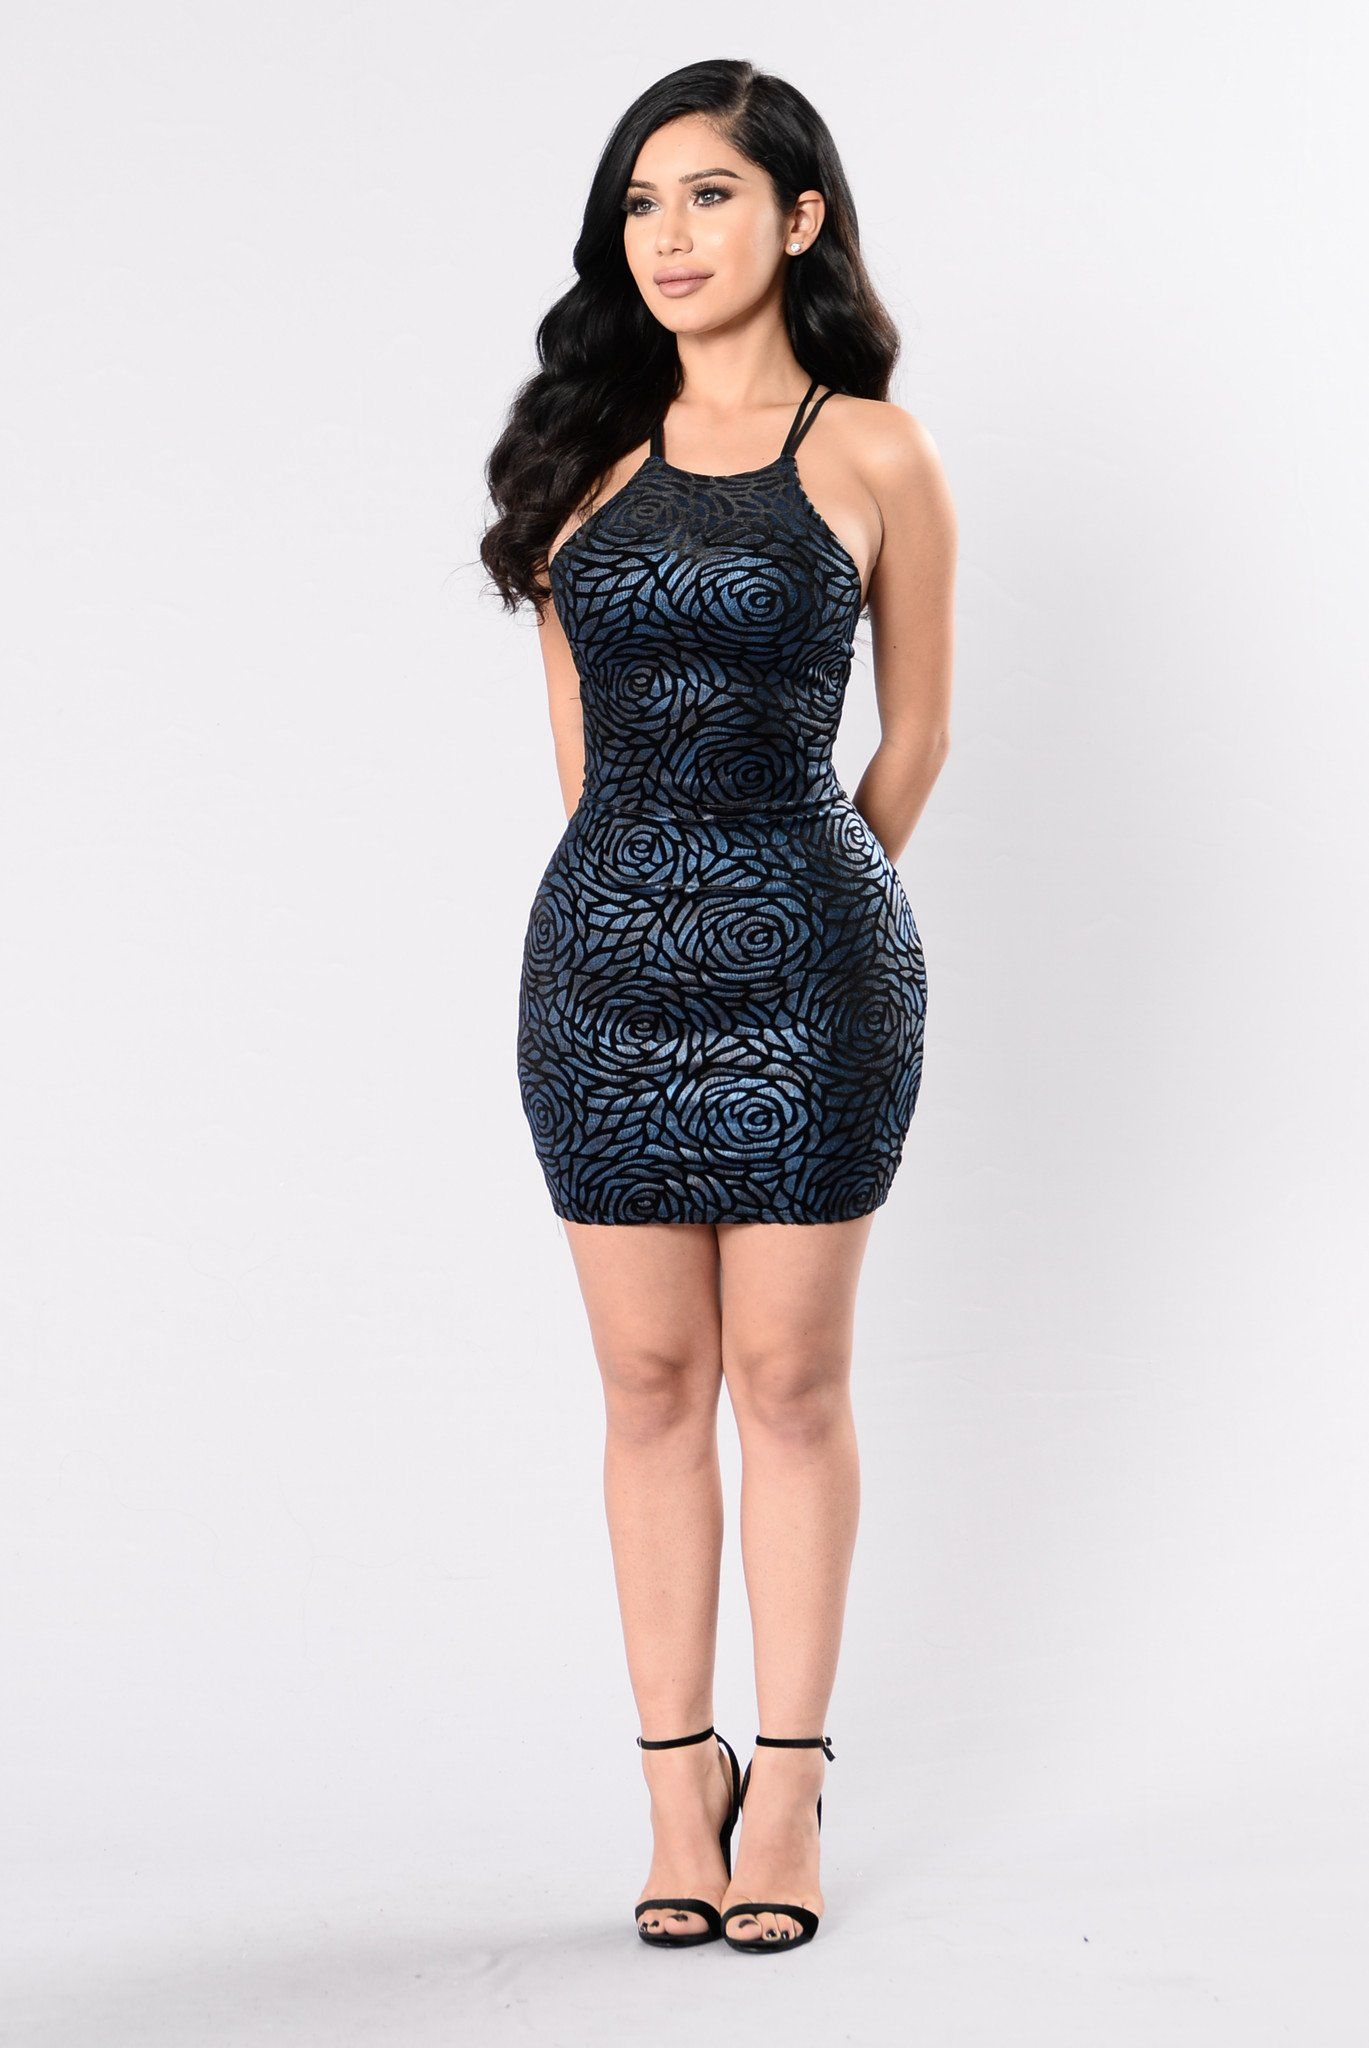 Solitaire dress midnight curvey women curves and red carpet